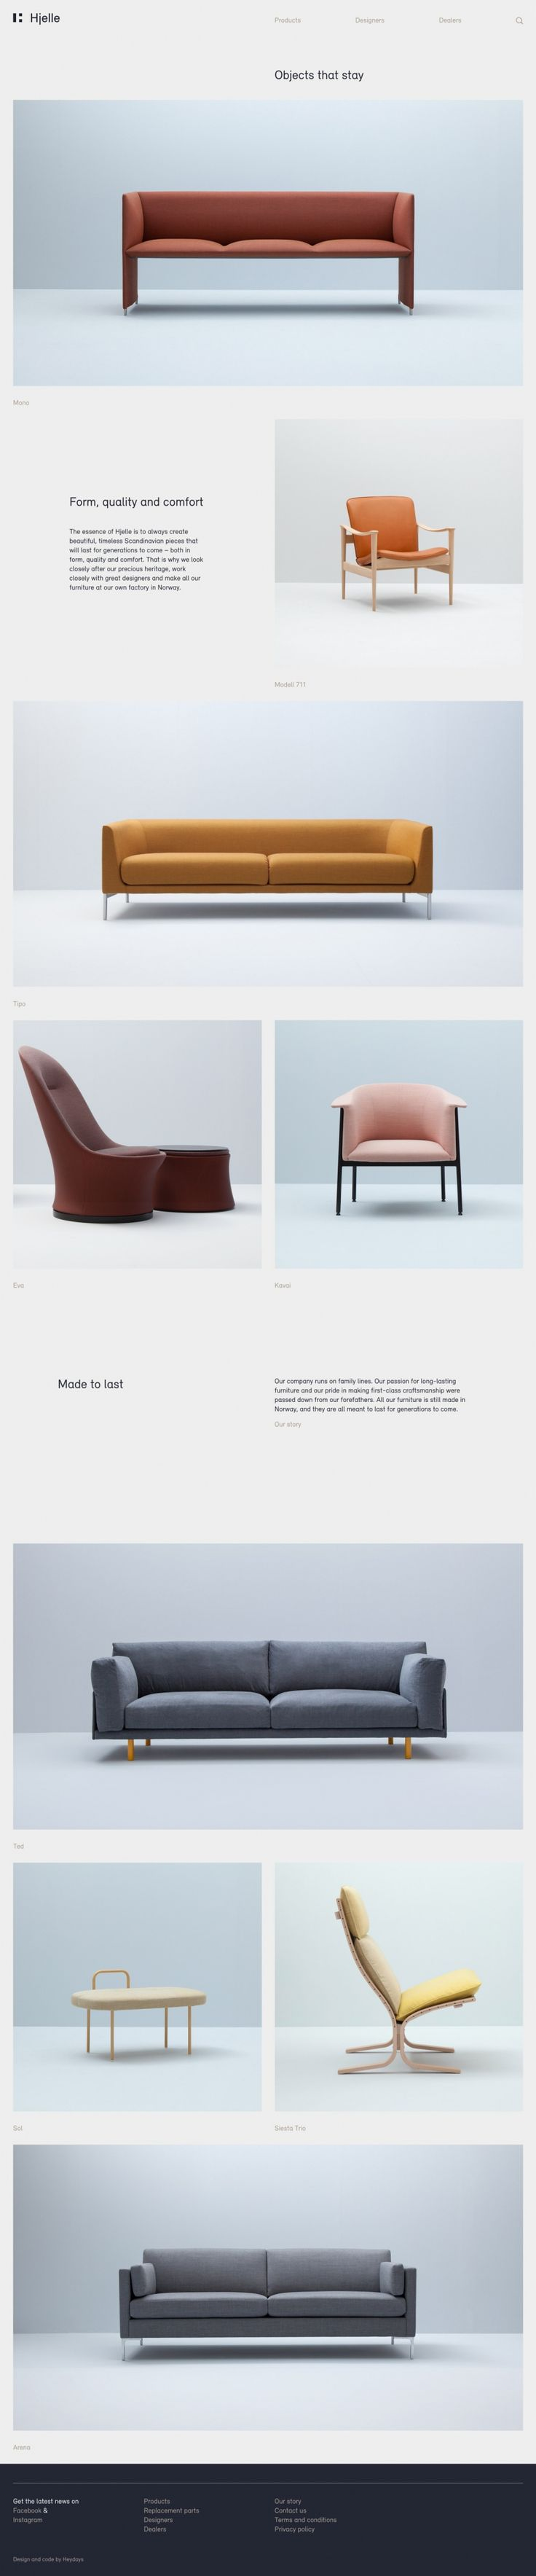 Hjelle creates beautiful design interior furniture seats in minimal danish scandinavian style. The new website is made by webdesign agency Heydays.